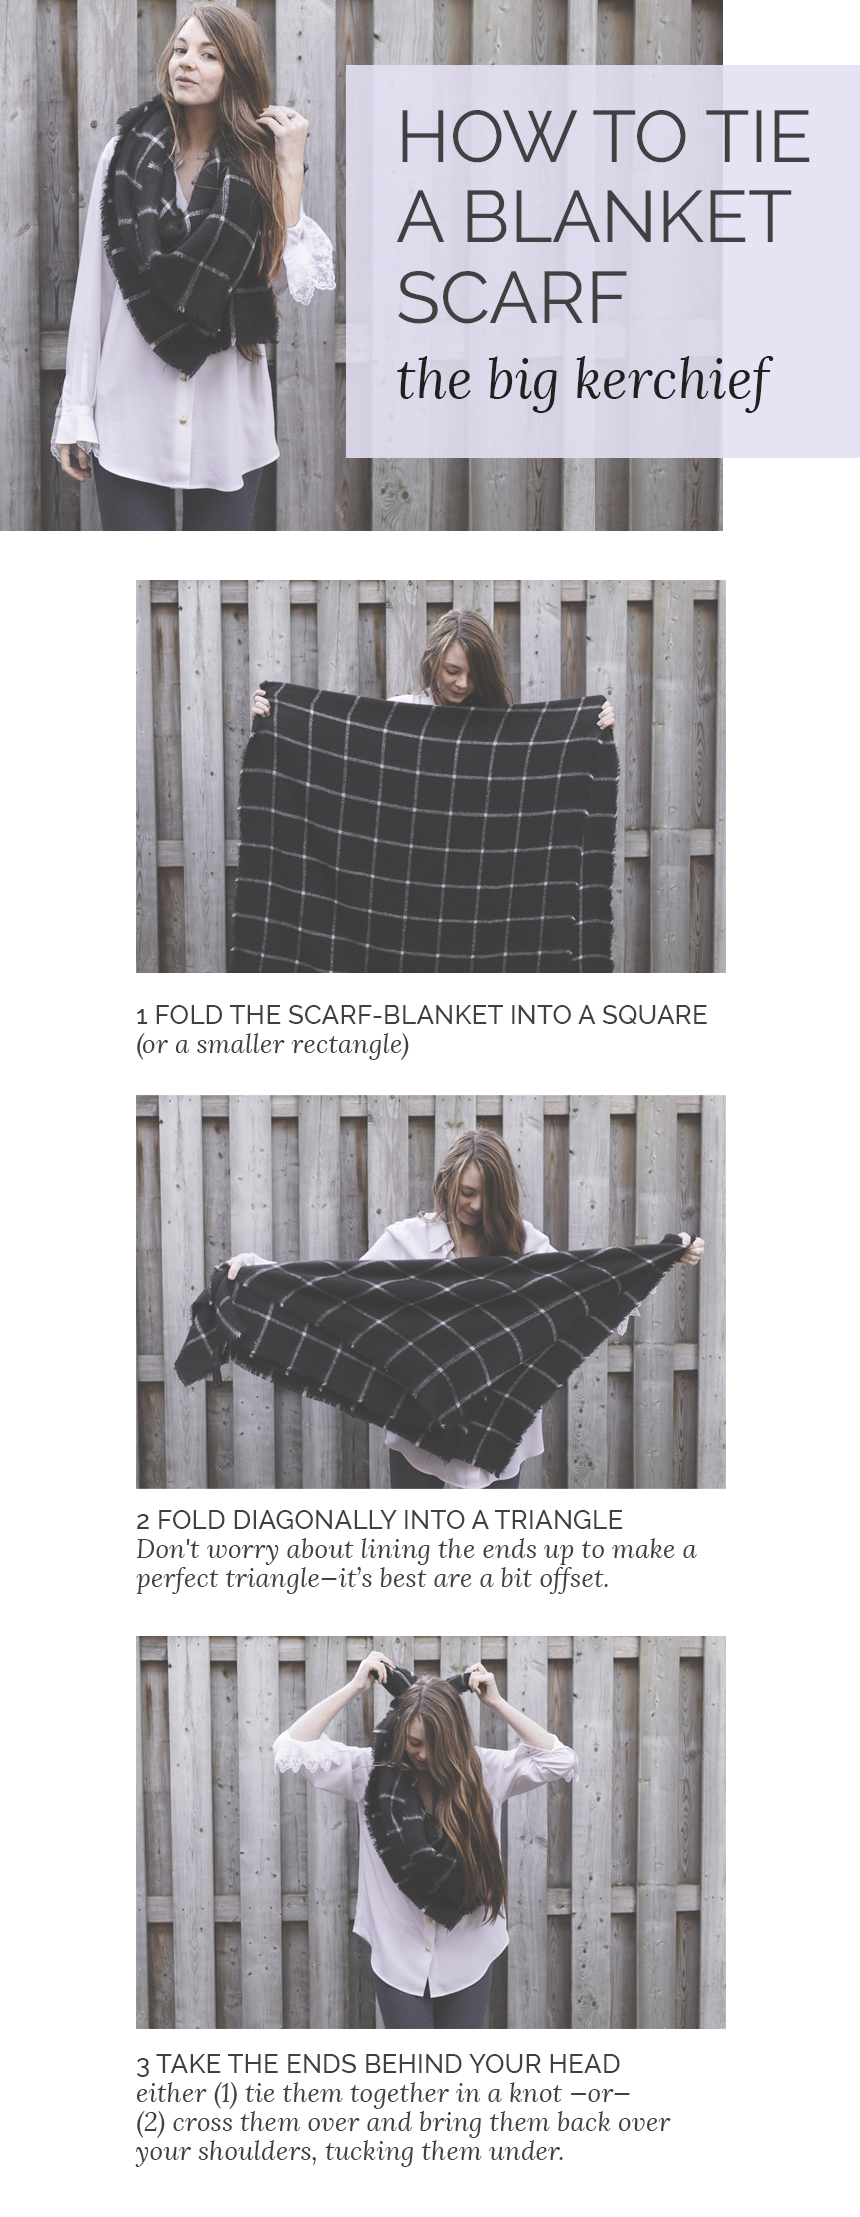 ways-to-wear-a-blanket-scarf.jpg